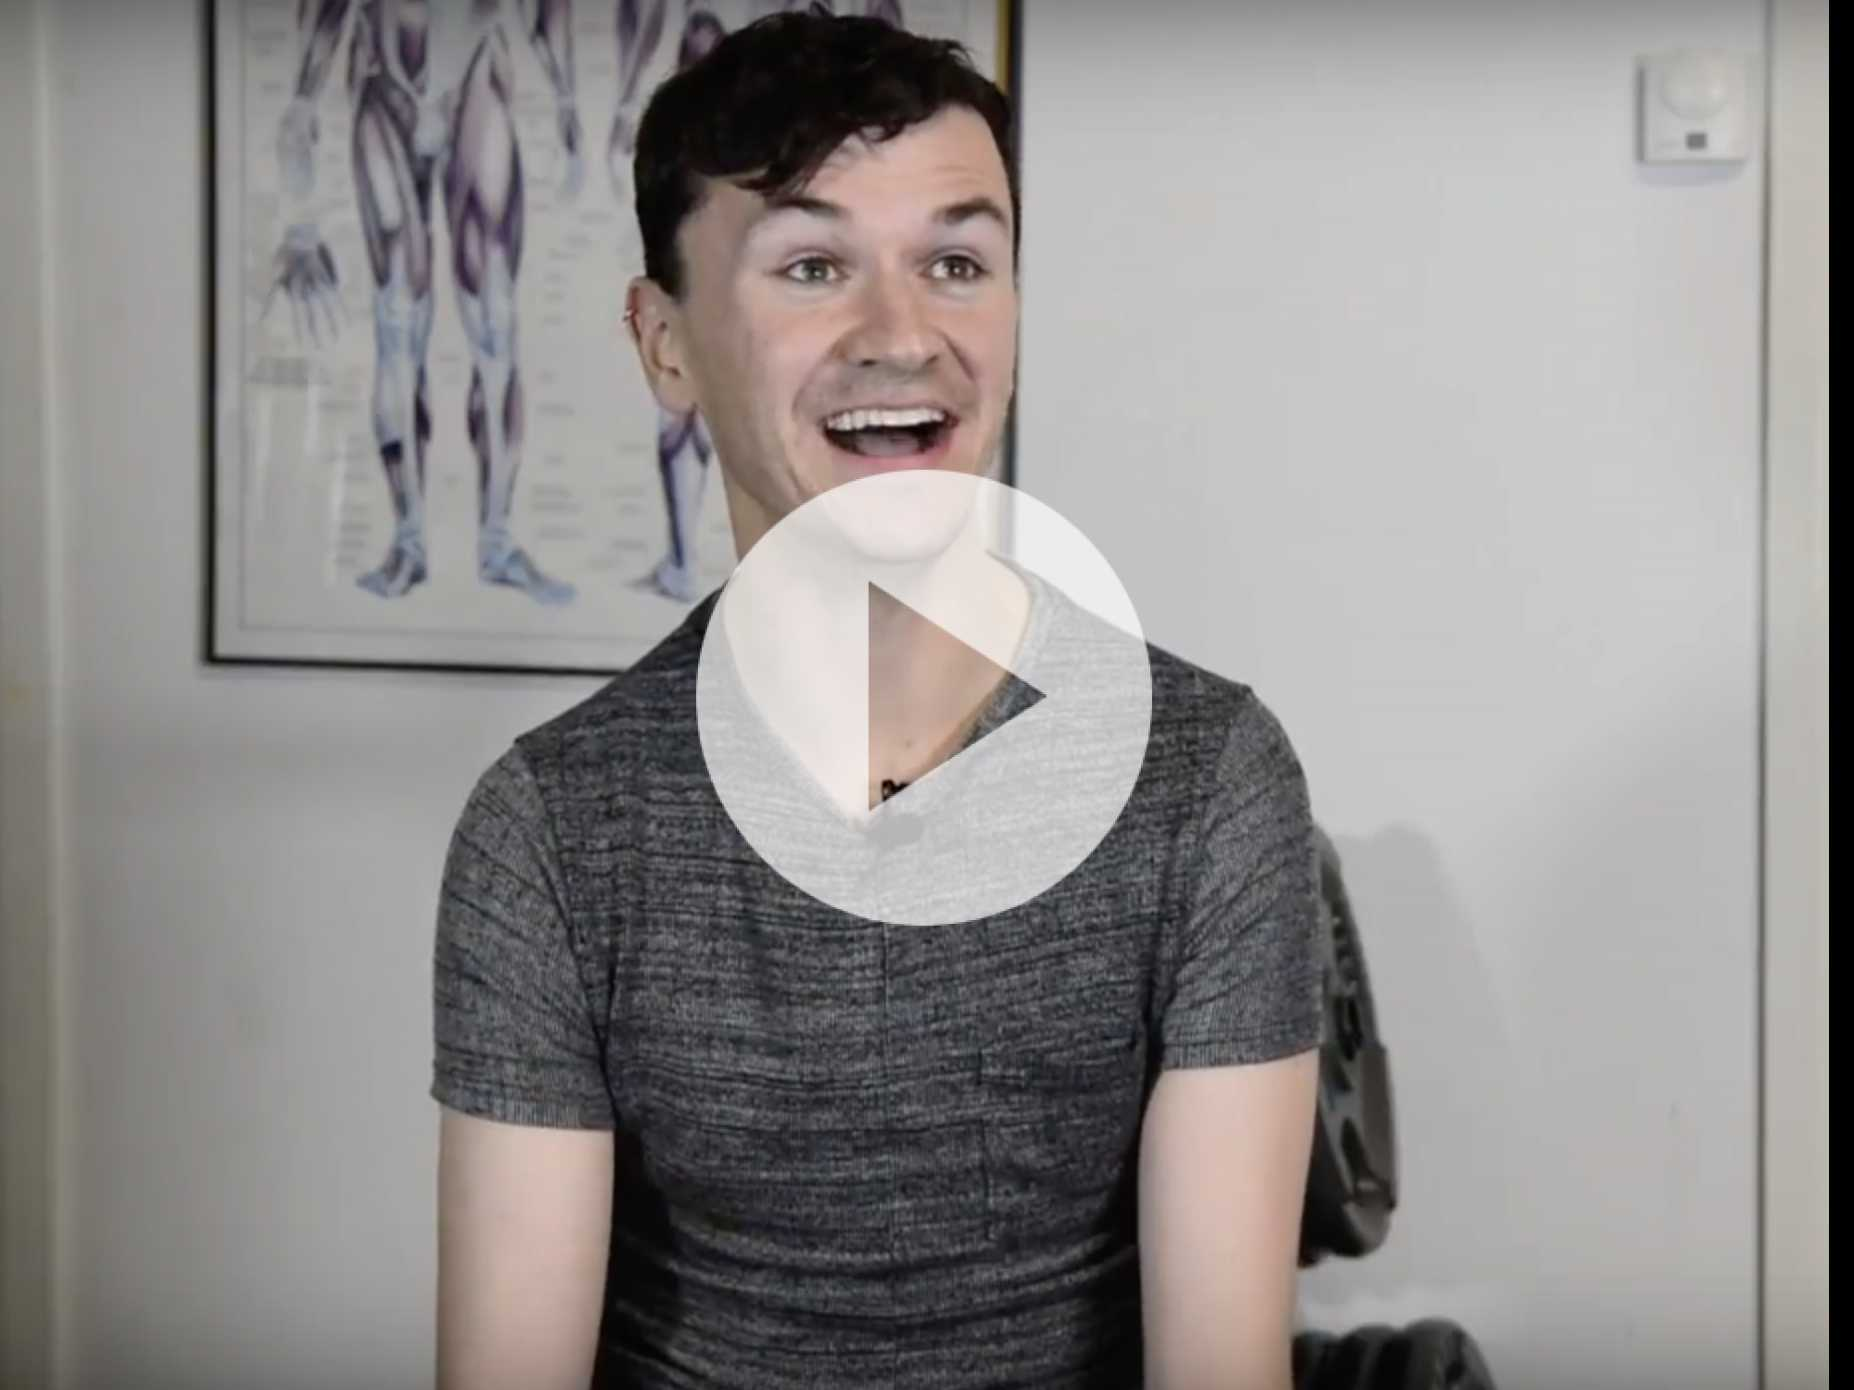 Watch: UK's Gay Fitness Challenge, Richard's Story